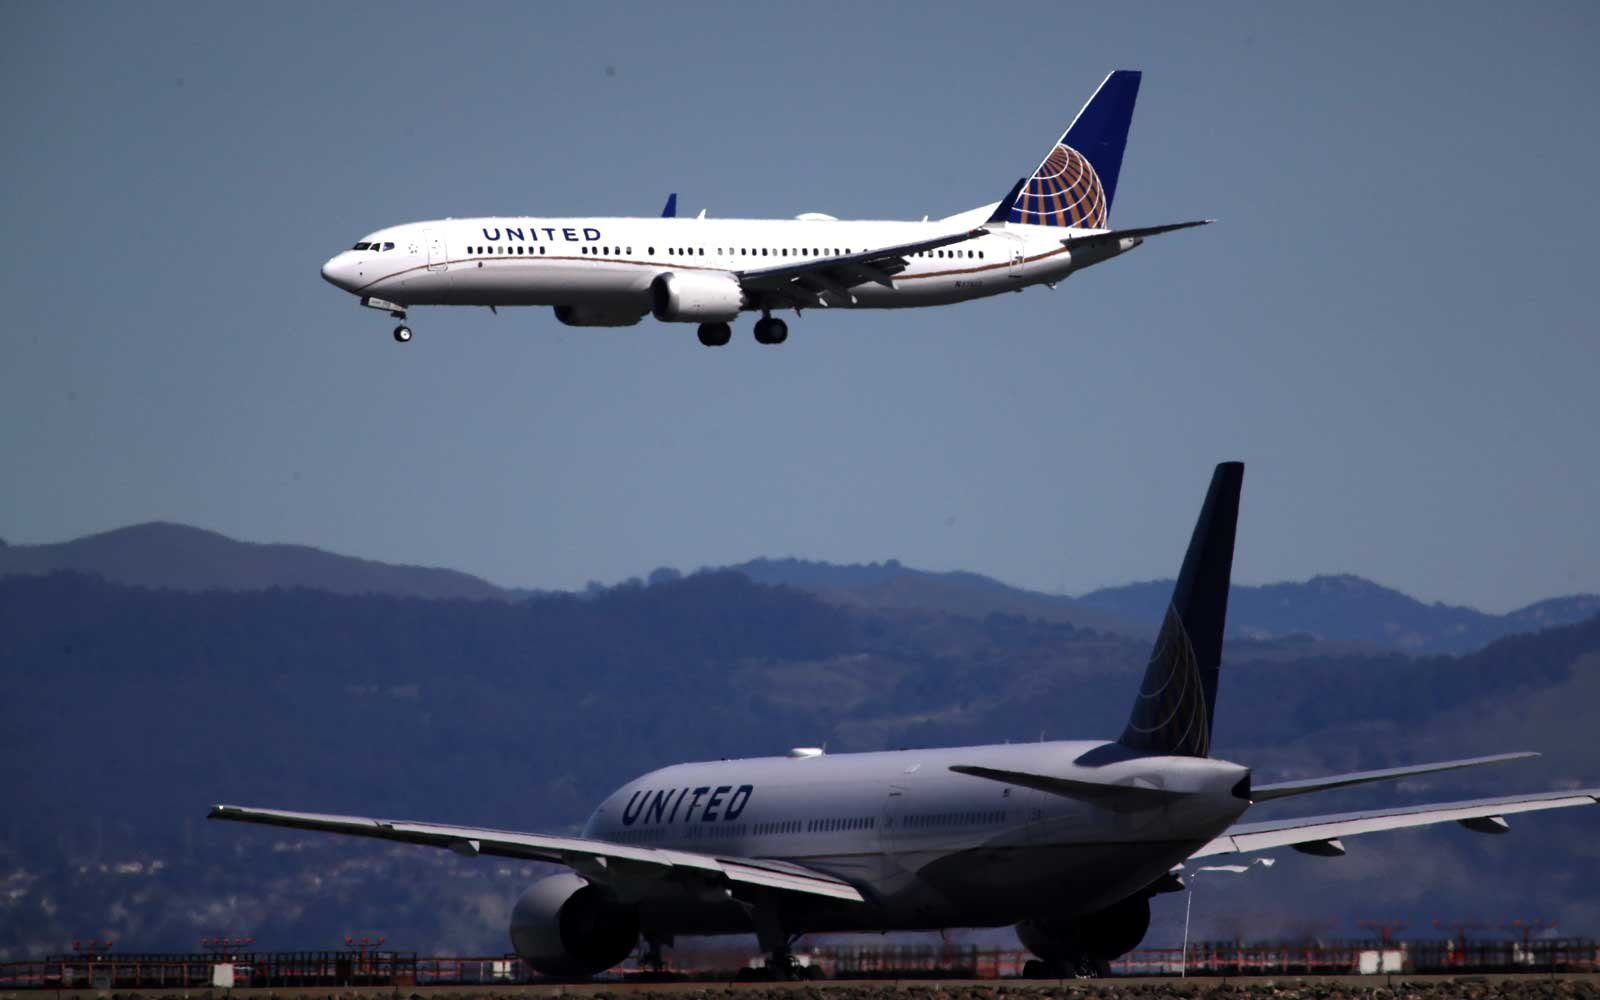 United Airlines Boeing 737 Max 8